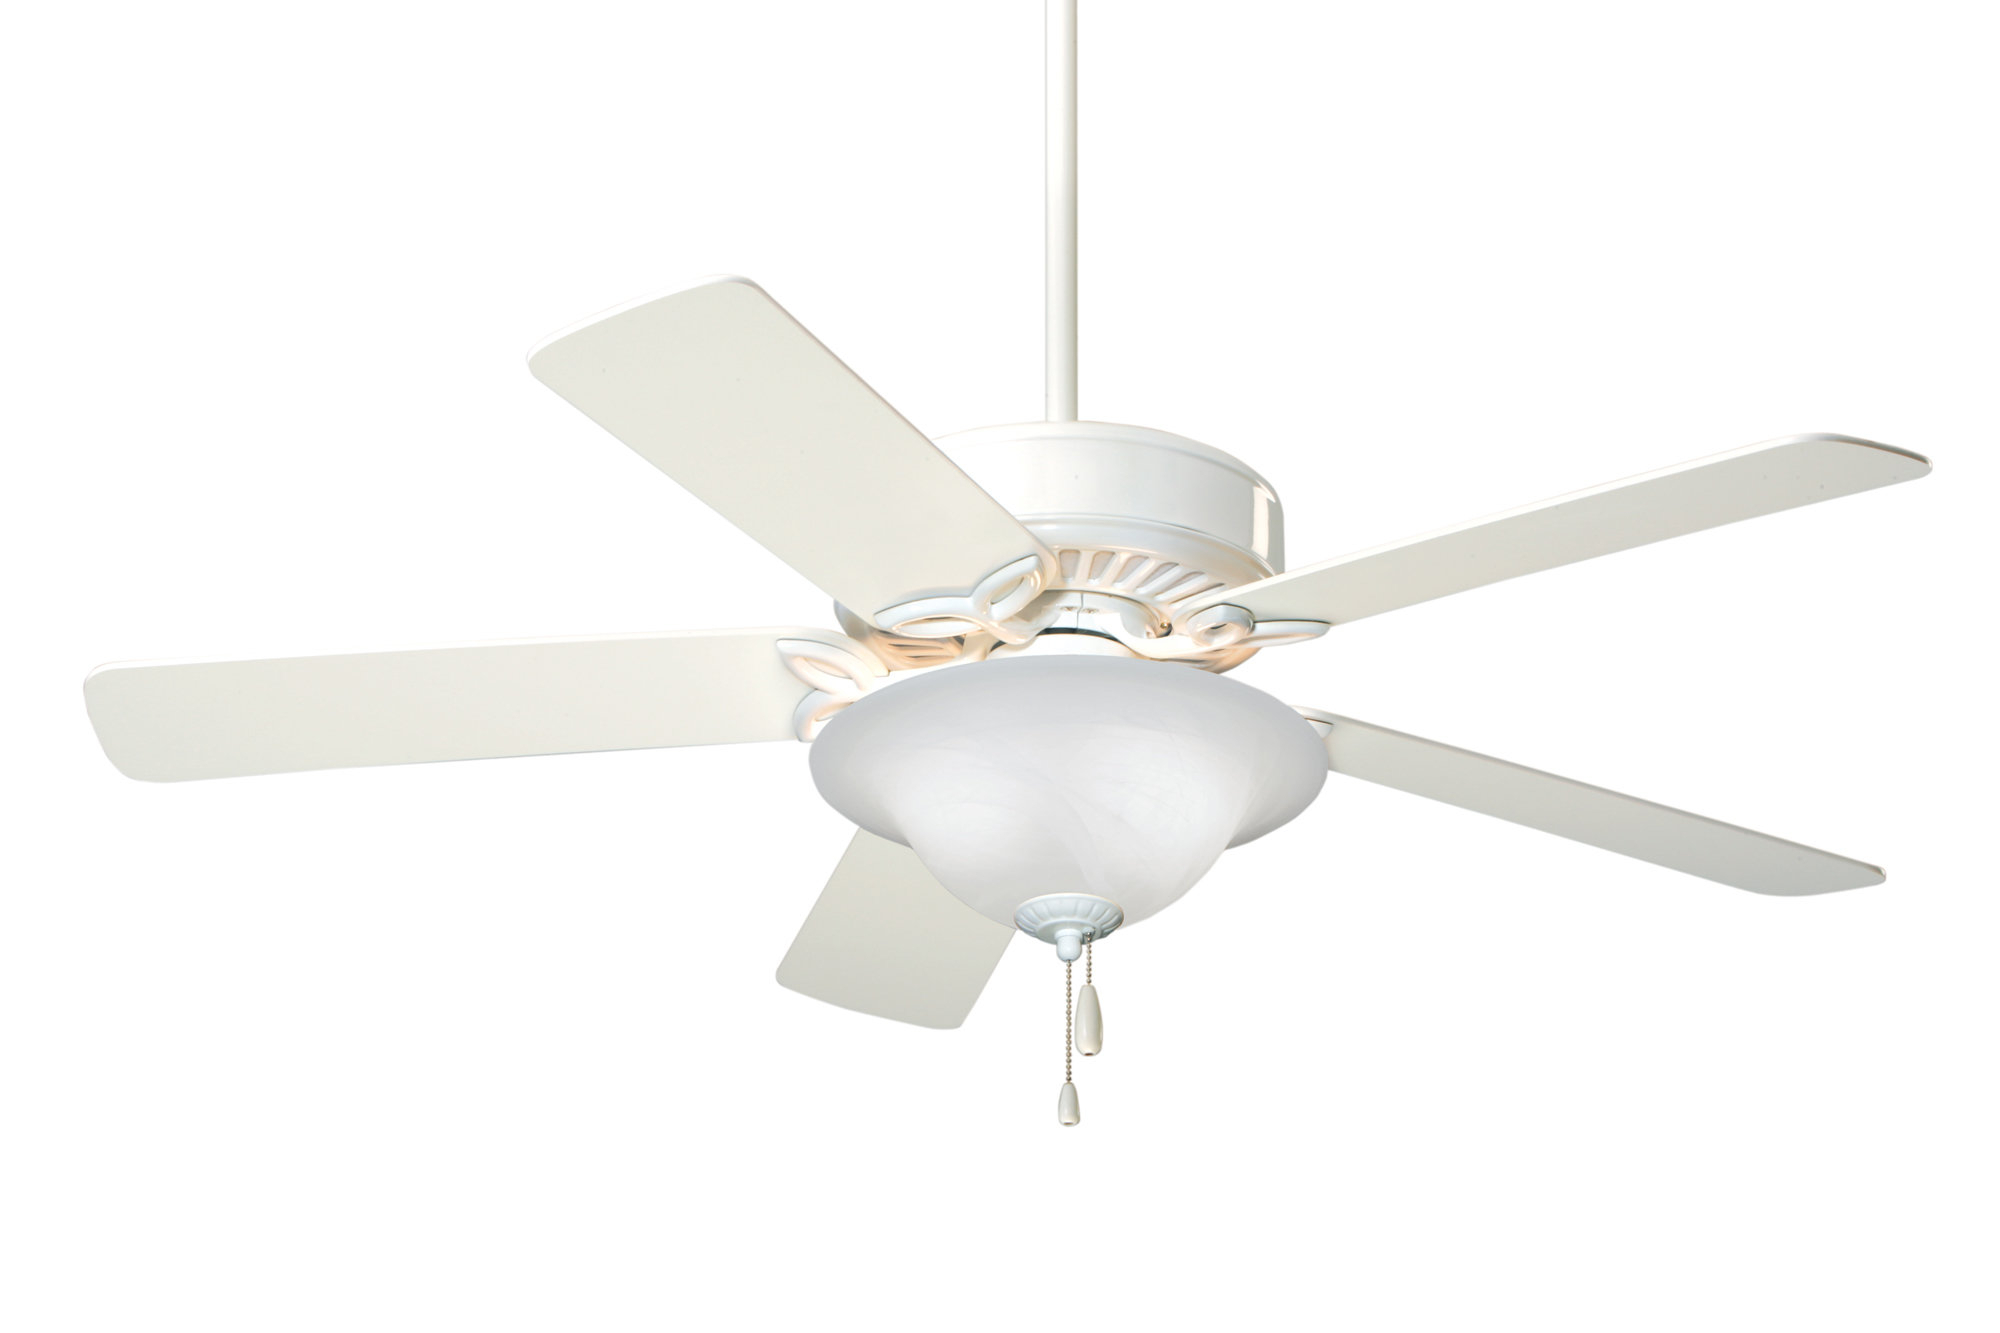 "Eliora 5 Blade Ceiling Fans Regarding Newest 50"" Eliora 5 Blade Ceiling Fan, Light Kit Included (View 4 of 20)"